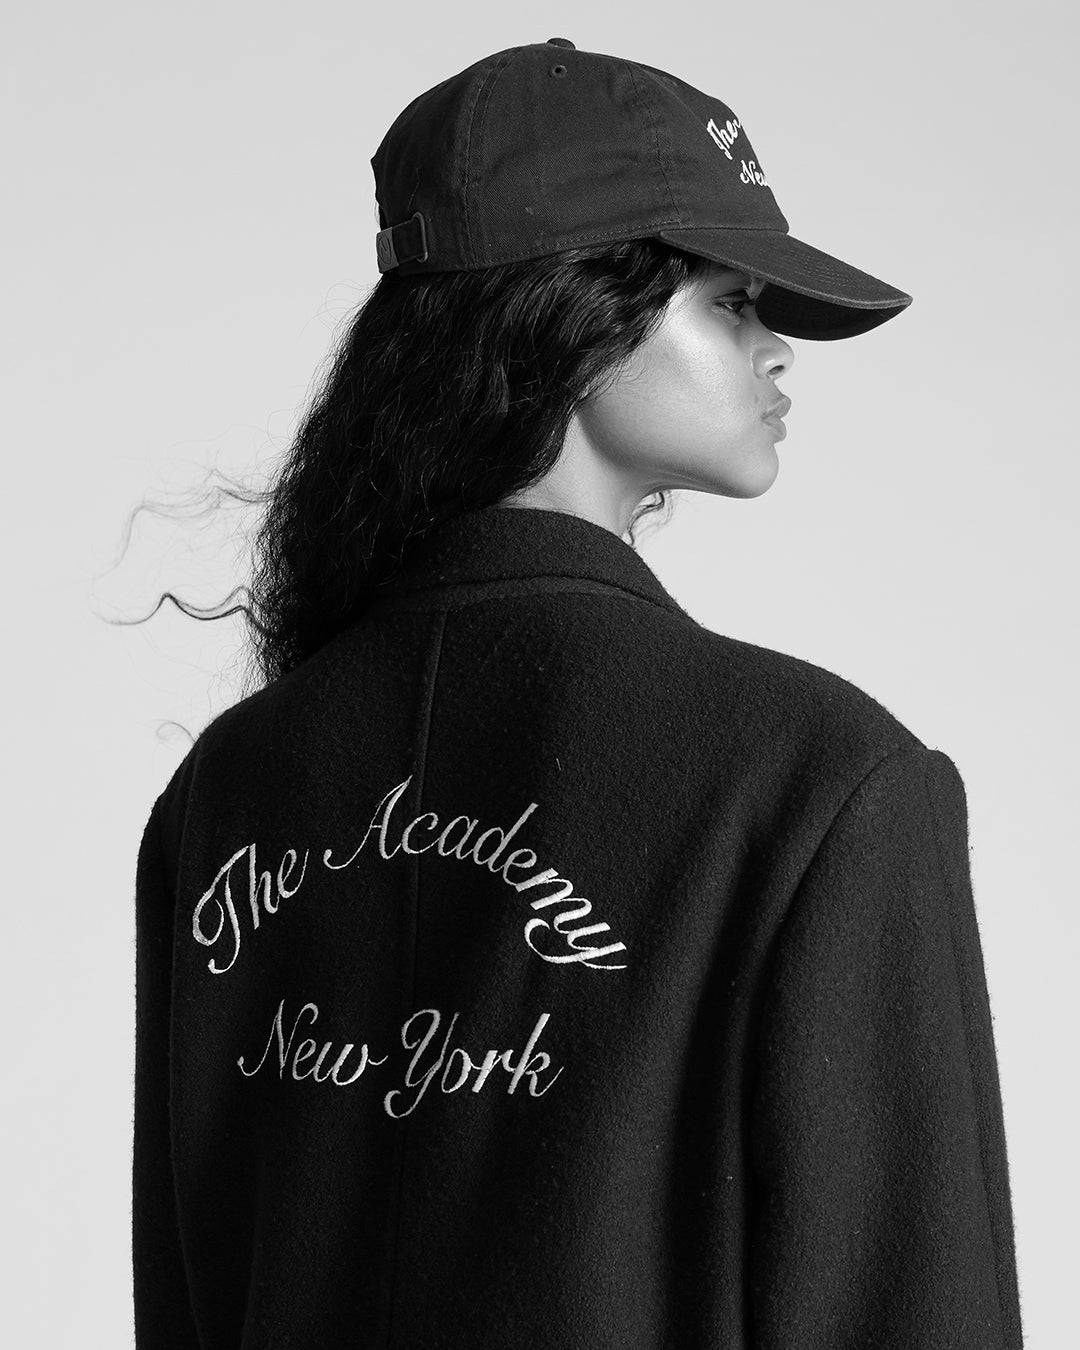 The Academy New York | Fall Winter 21 Collection